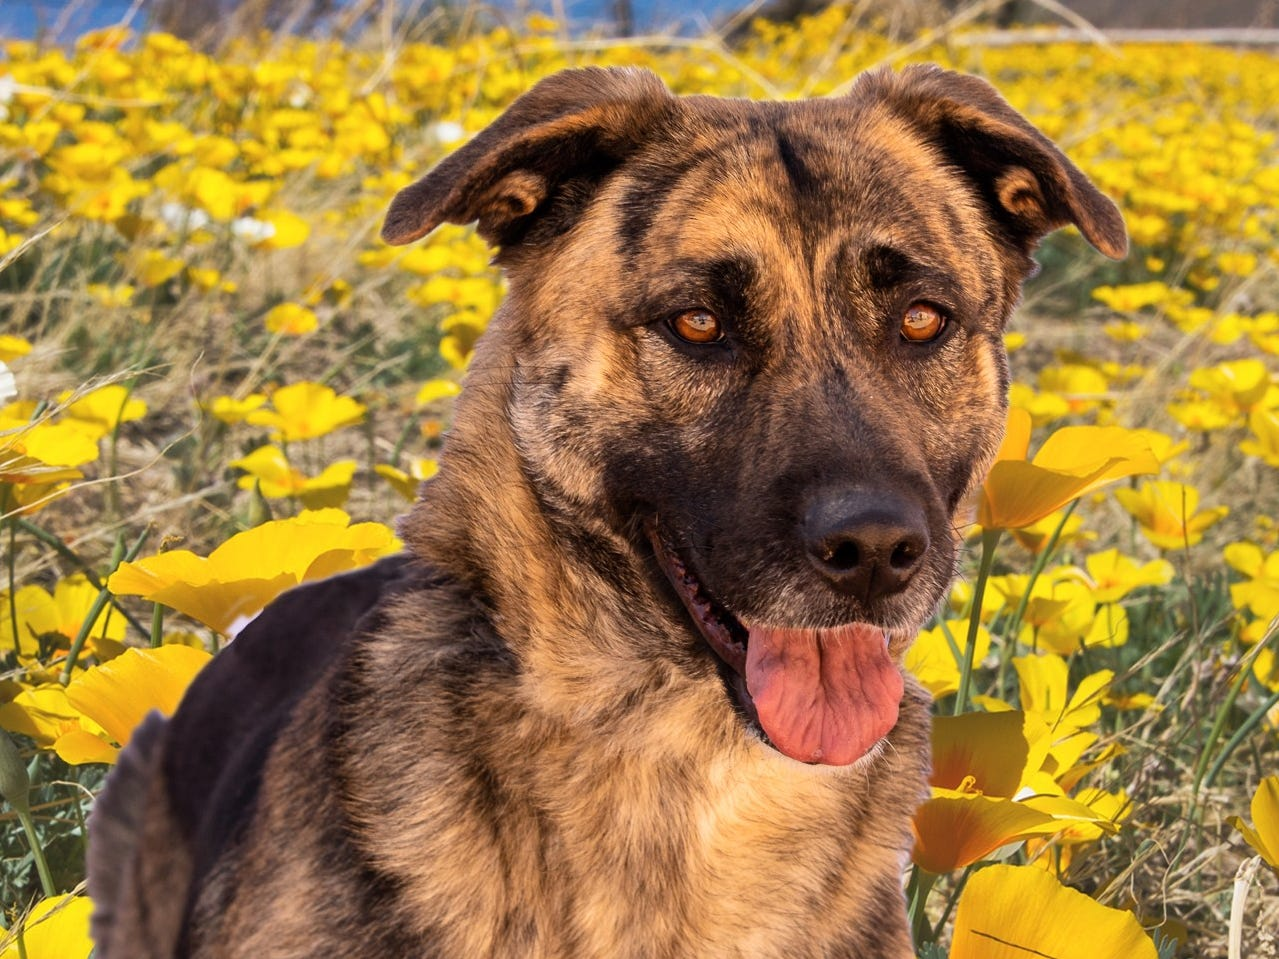 Daphnie - Female (spayed) shepherd mix, about 3 years old. Intake date: 11/22/2018